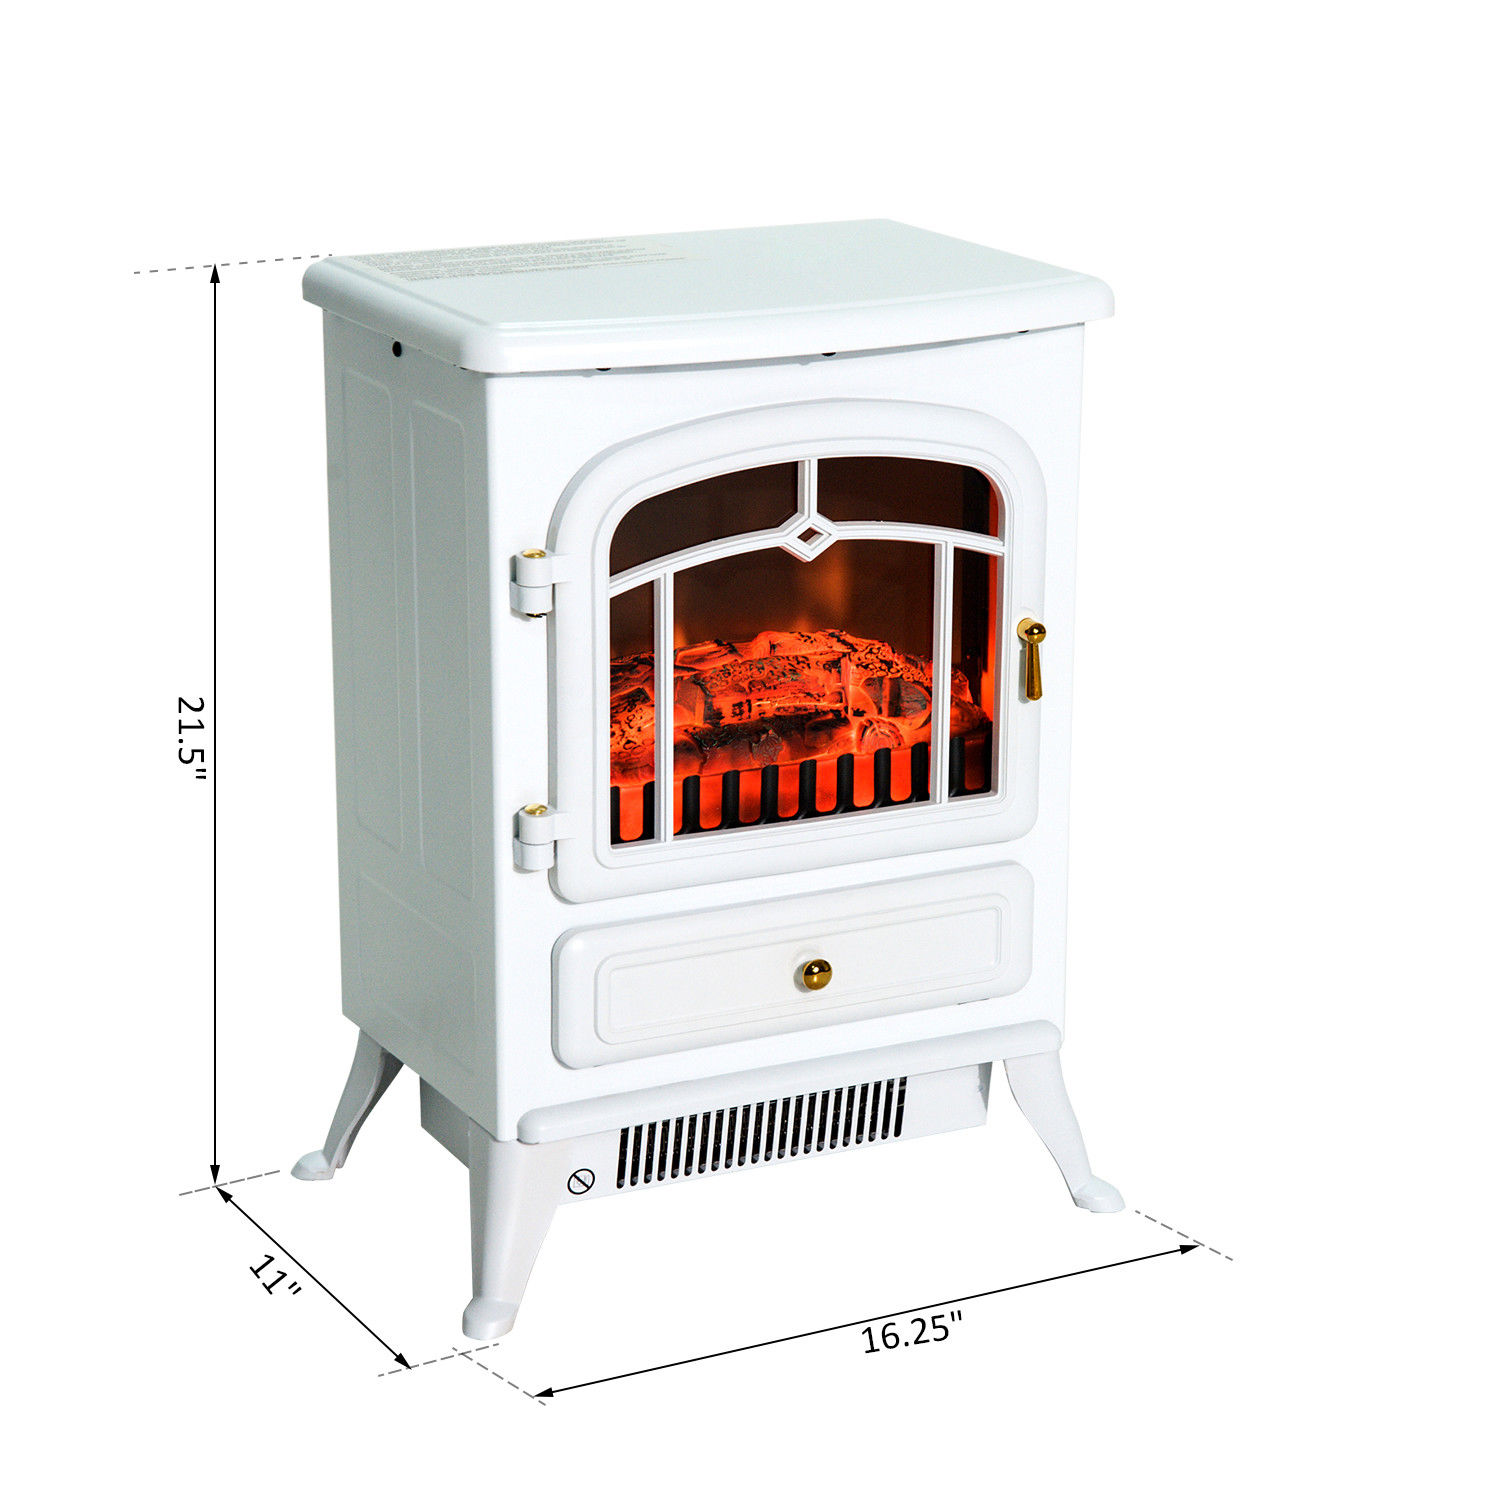 HOMCOM-750-1500W-Portable-Electric-Fireplace-Stove-Heater-Adjustable-LED-Flames thumbnail 18